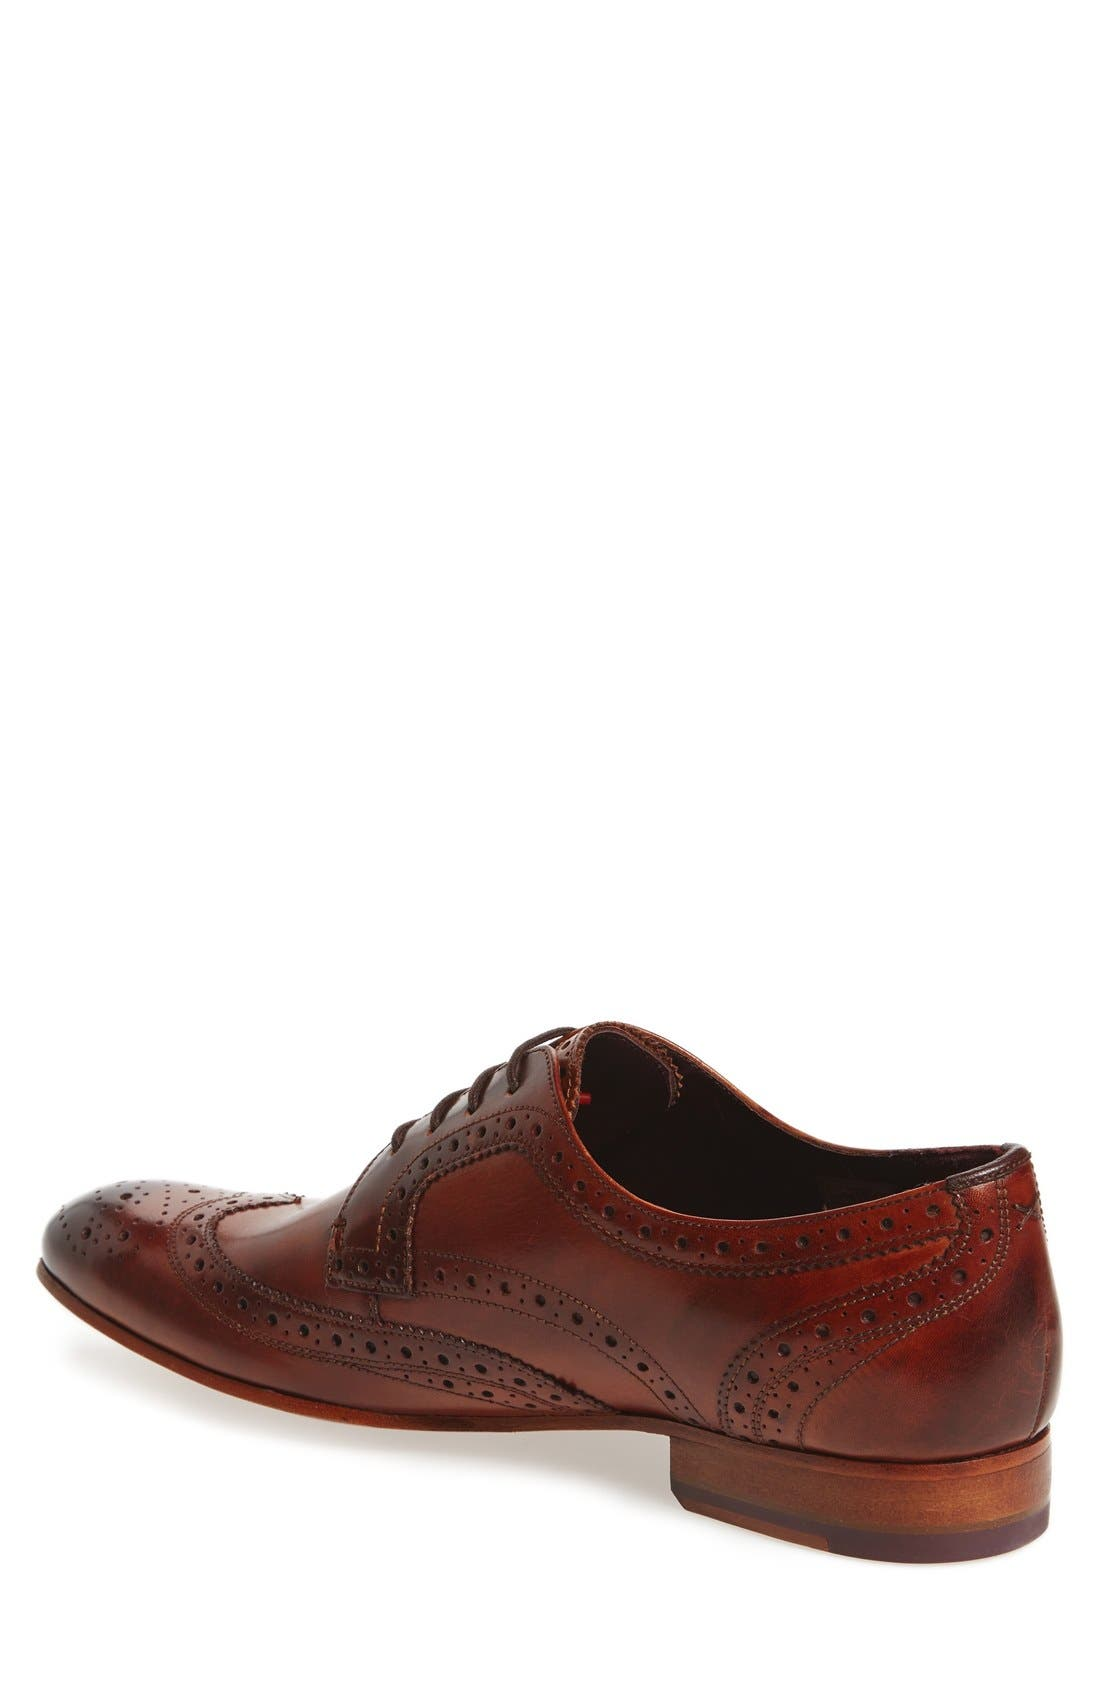 'Gryene' Wingtip Oxford,                             Alternate thumbnail 7, color,